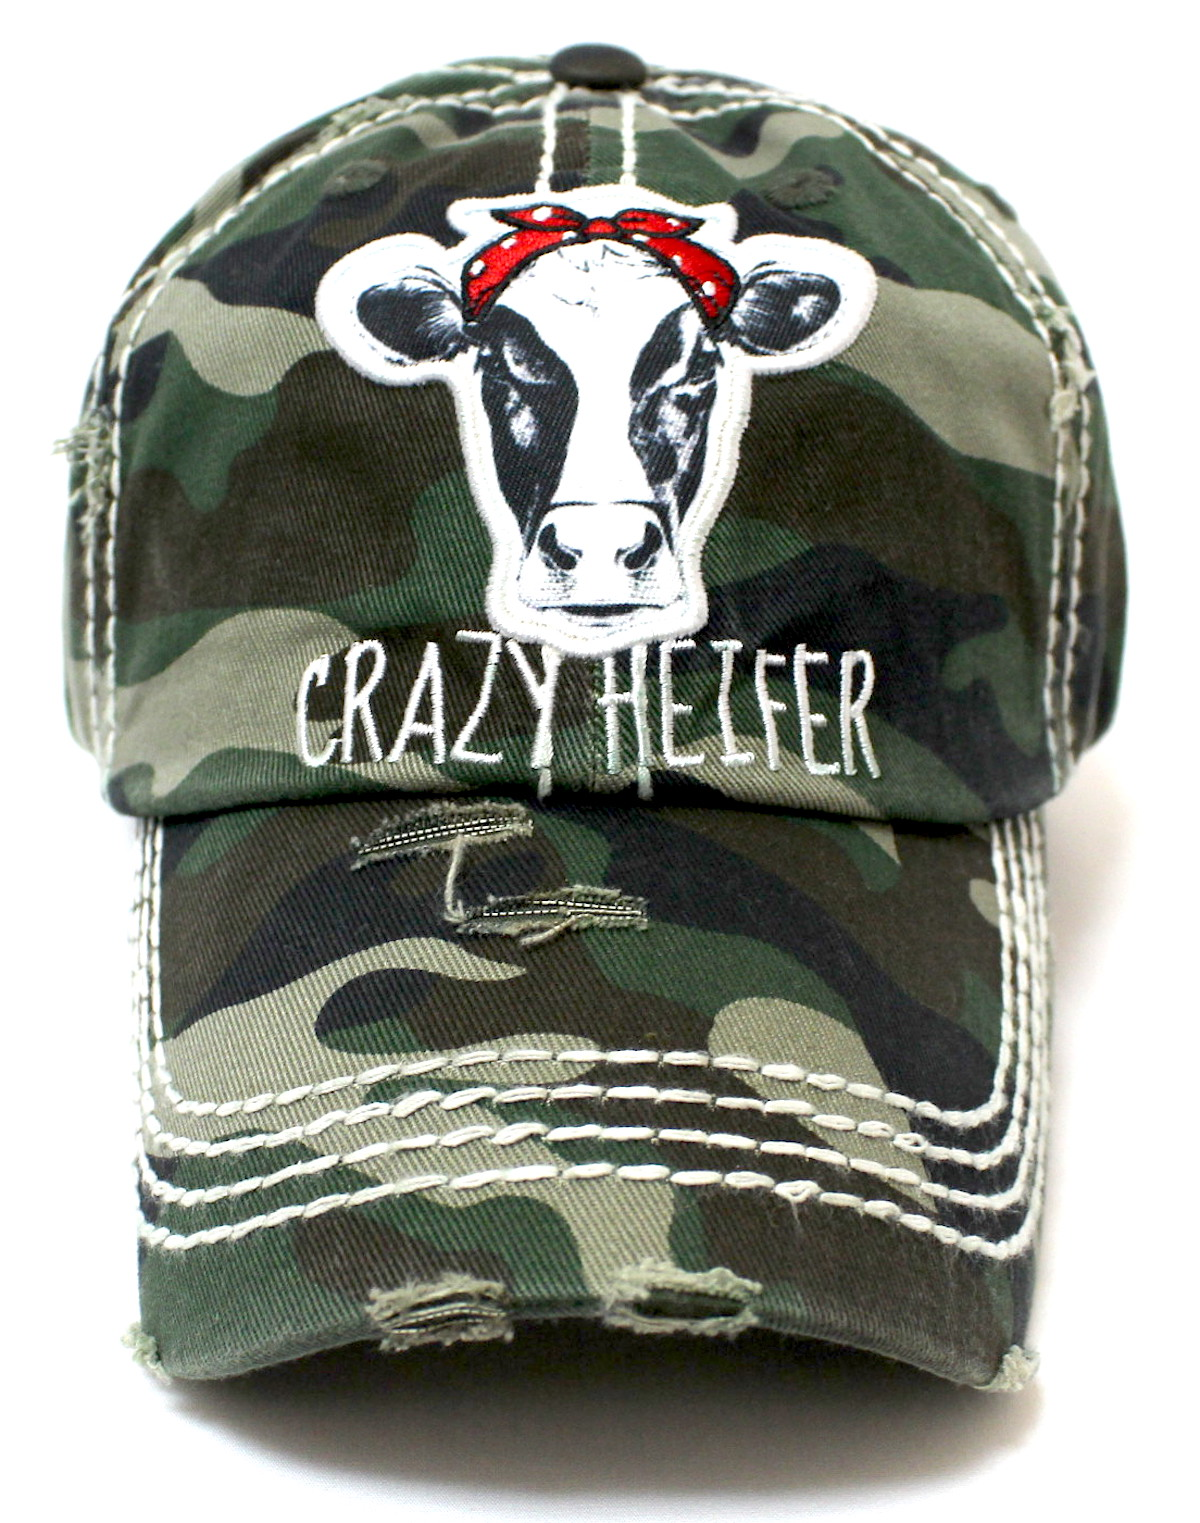 CrazyHeifer_Cam_Front